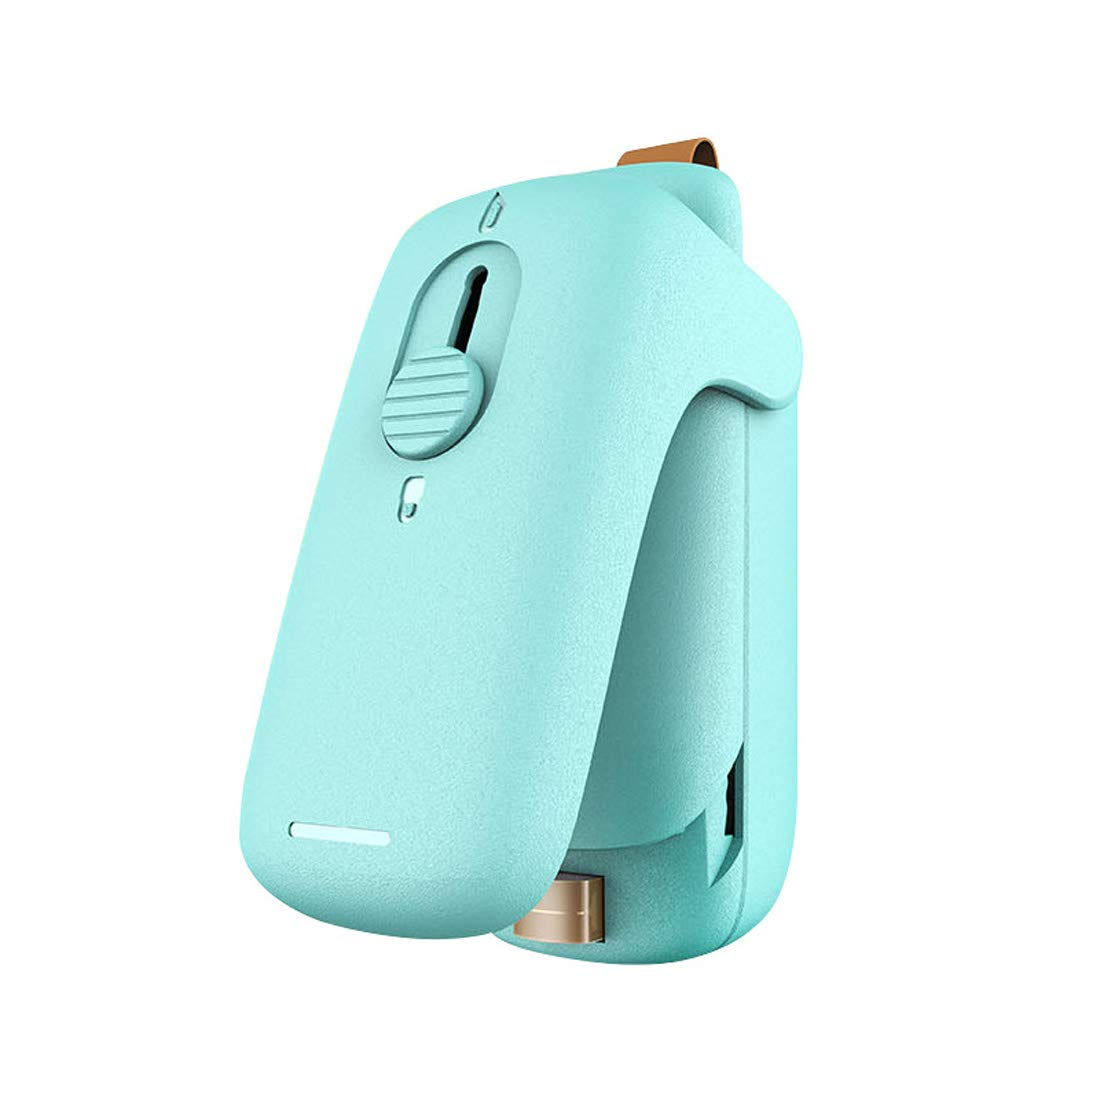 Mini Bag Sealer, Portable Handheld Heat Sealer with Cutter and Magnet, Mini Sealing Machine for Plastic Bags Food Storage Snack Potato Chips